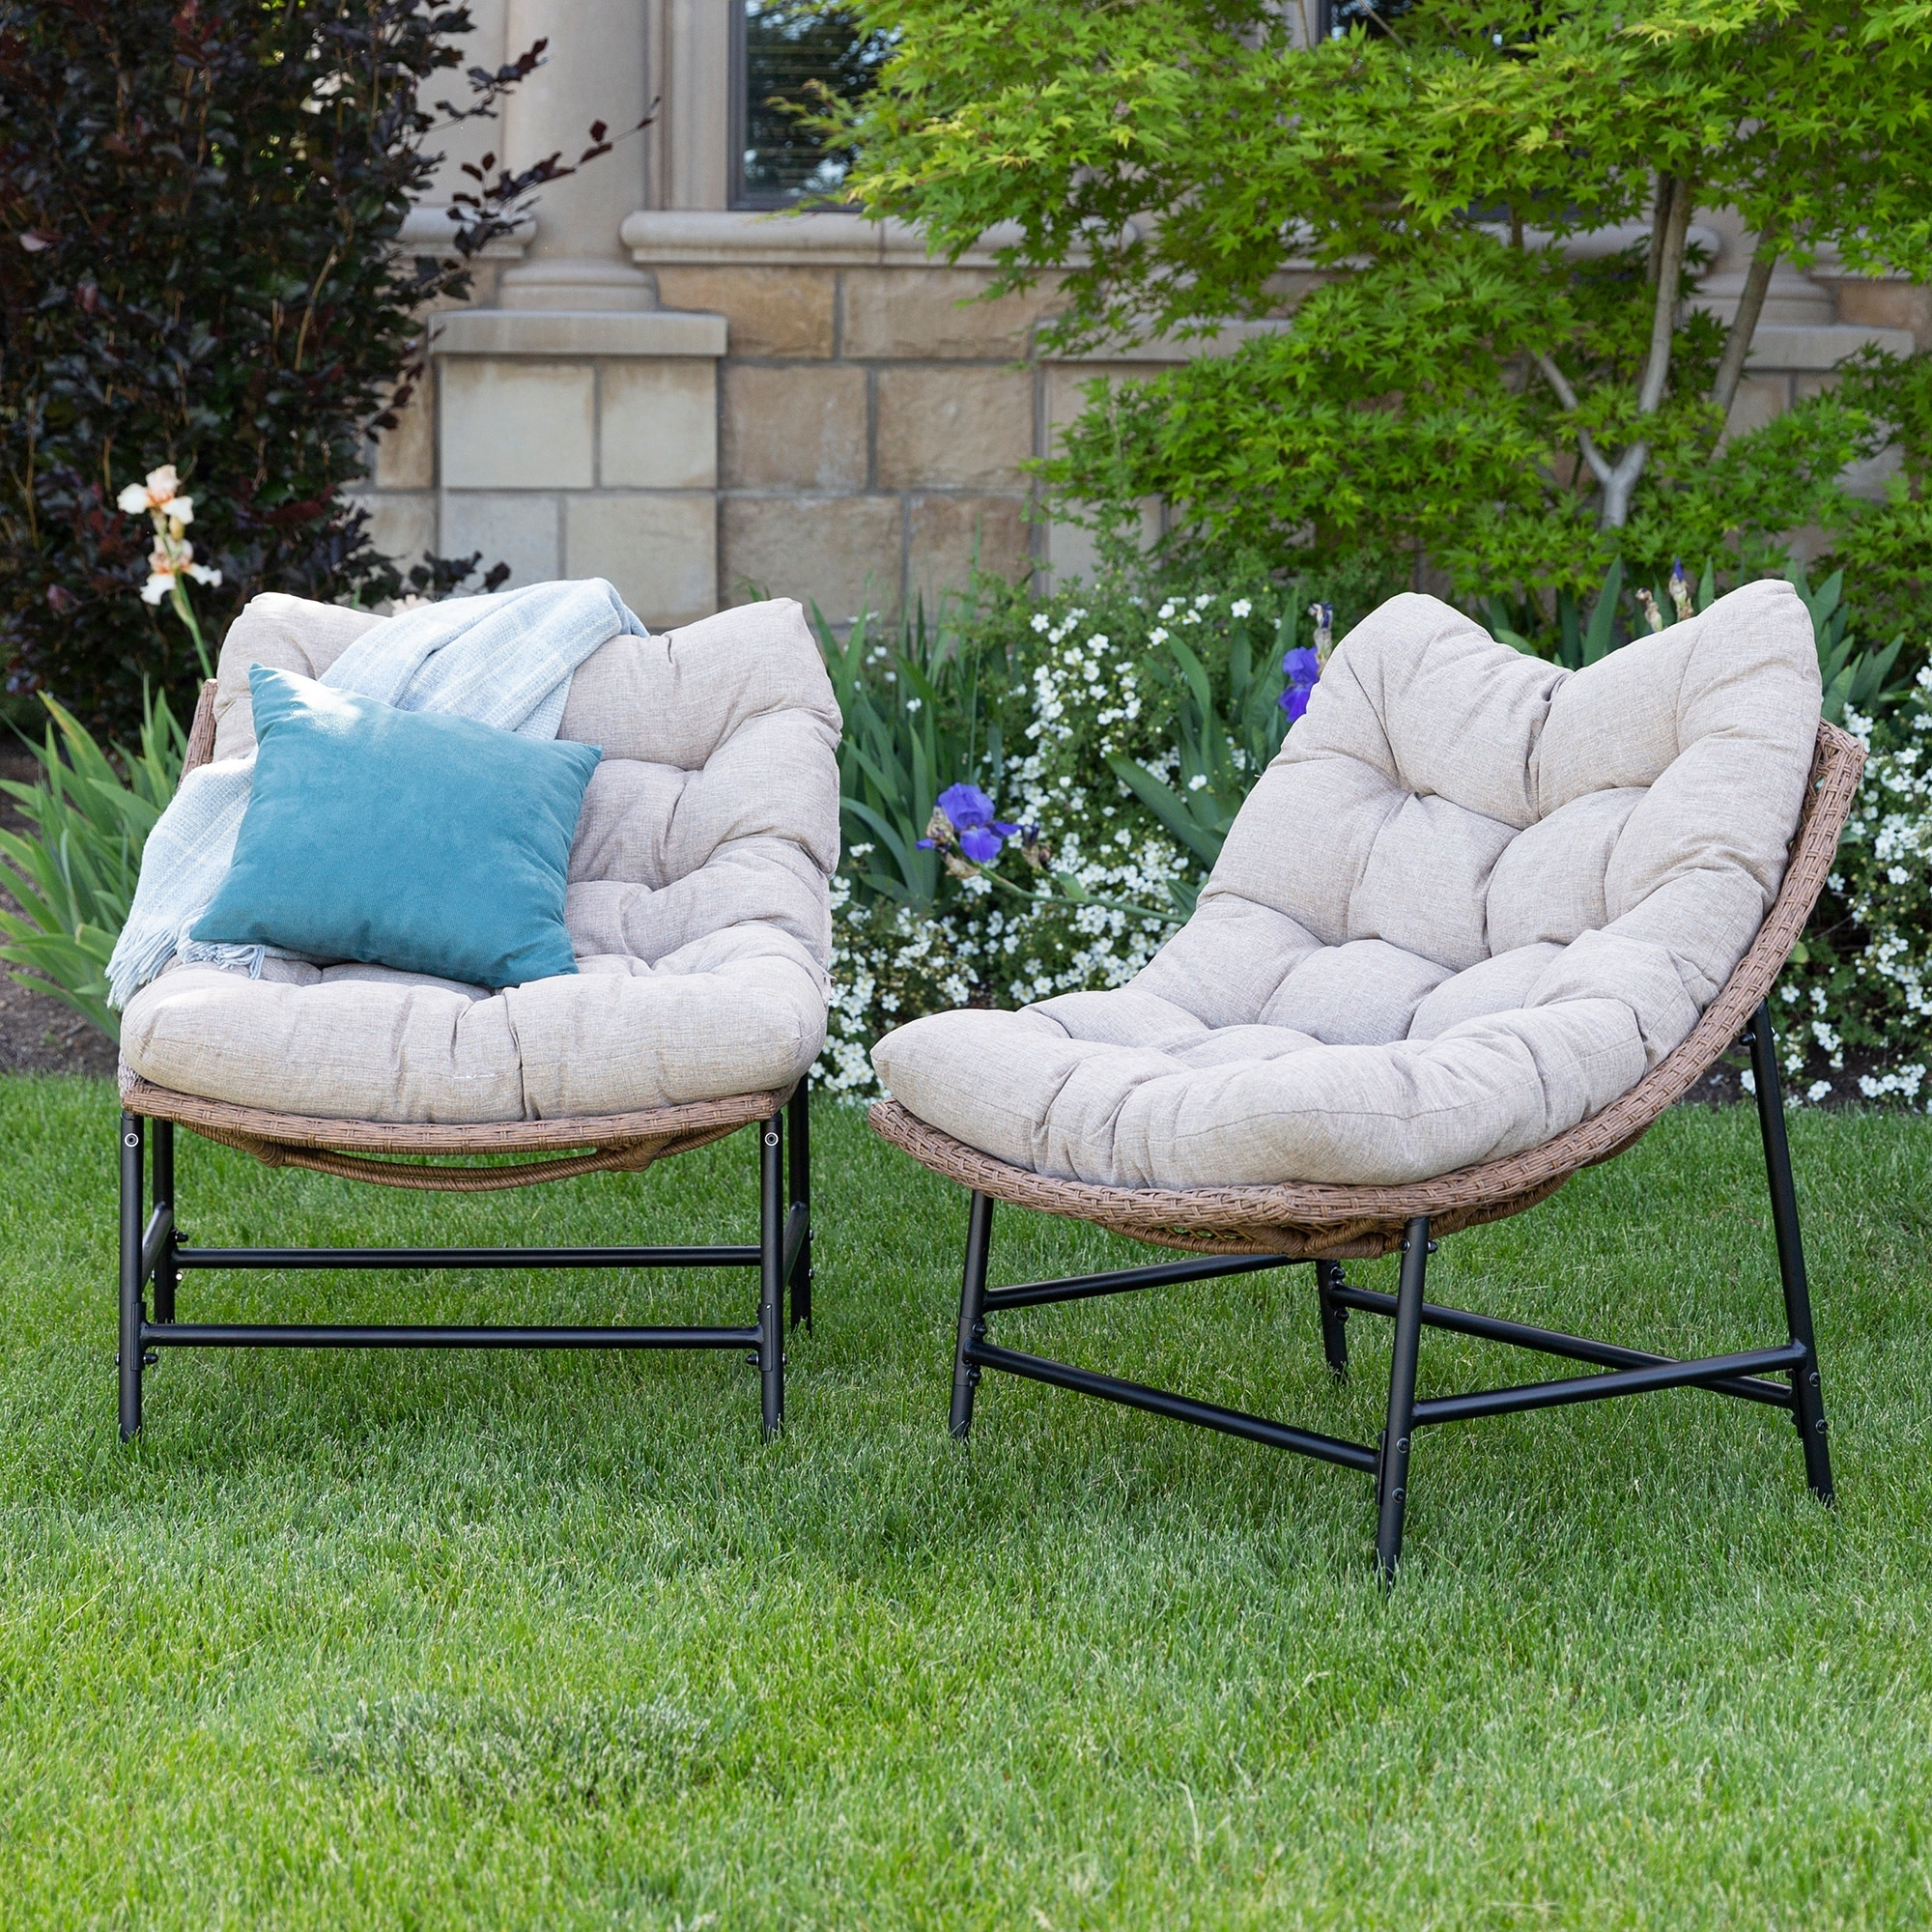 Most Popular Decker Papasan Chairs Inside Outdoor Rattan Papasan Chairs With Cushions, Set Of (View 18 of 20)